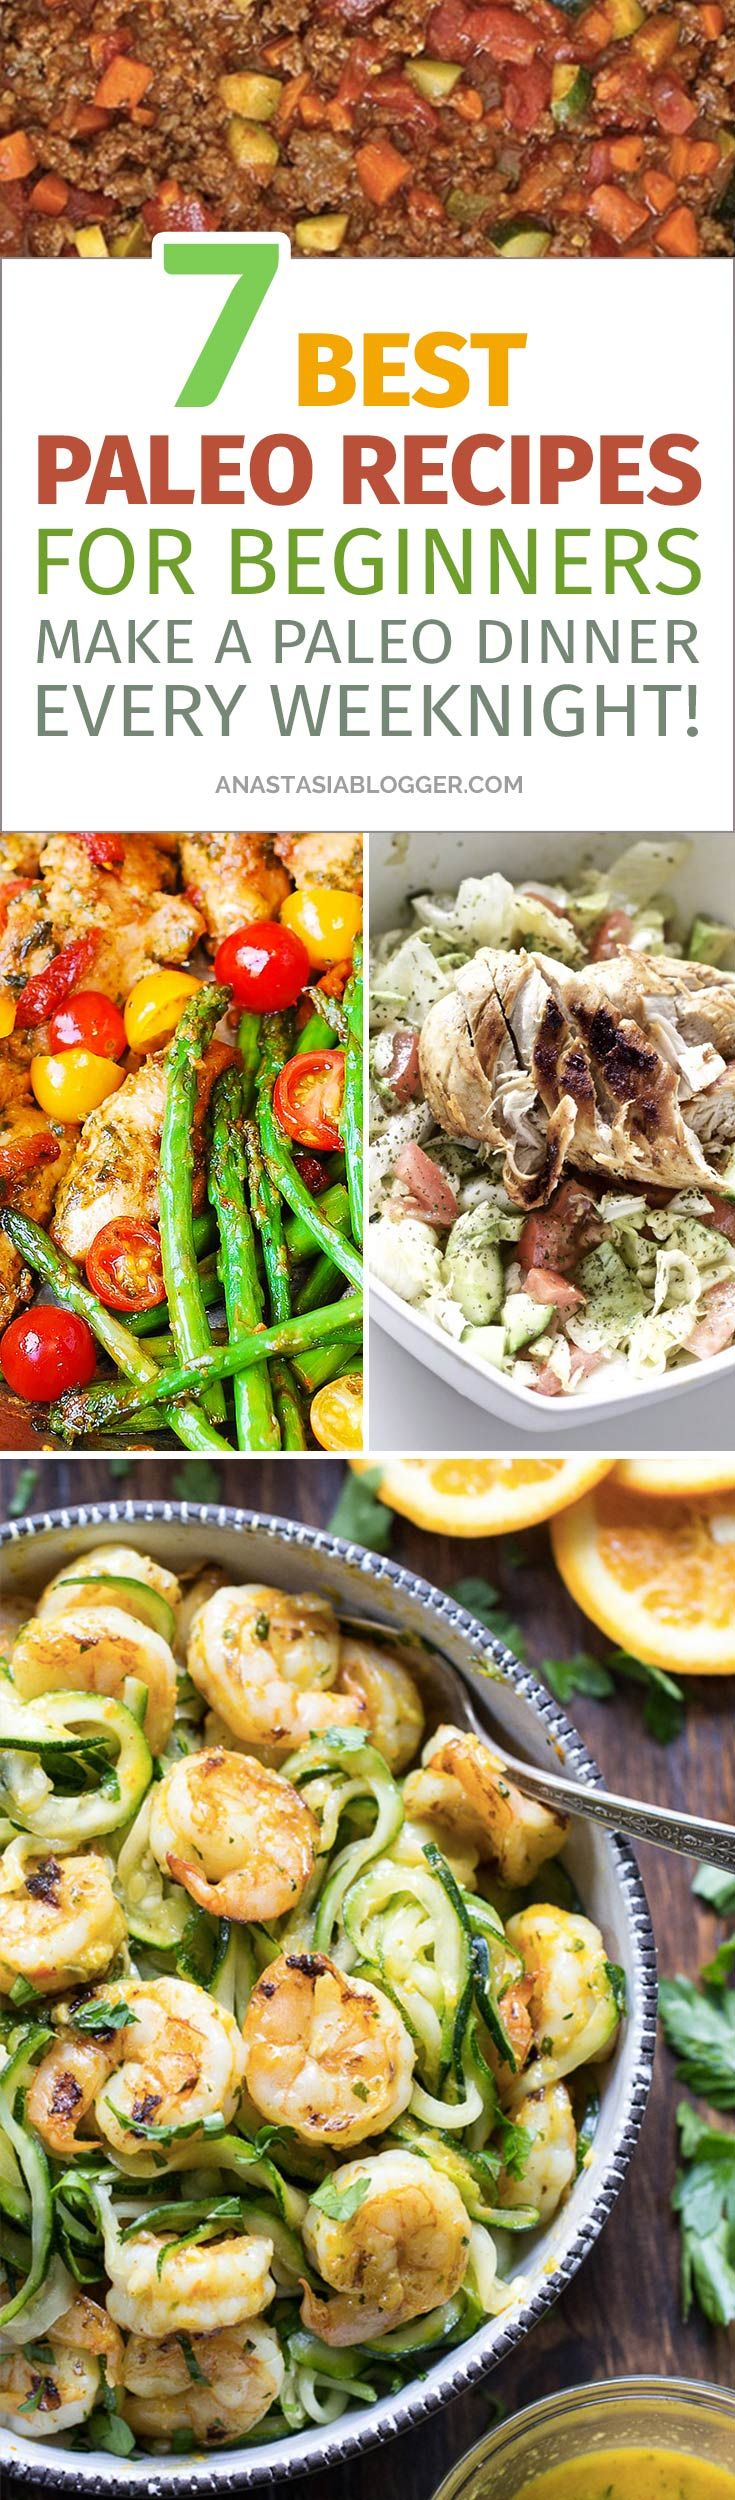 7 Best Paleo Recipes – Cook a Paleo Dinner every weeknight in under 30 minutes! Paleo for beginners should be easy and fun to cook, so I made a list of my favorite Paleo diet meals. Easy Paleo recipes for weight loss. #paleo #paleodiet